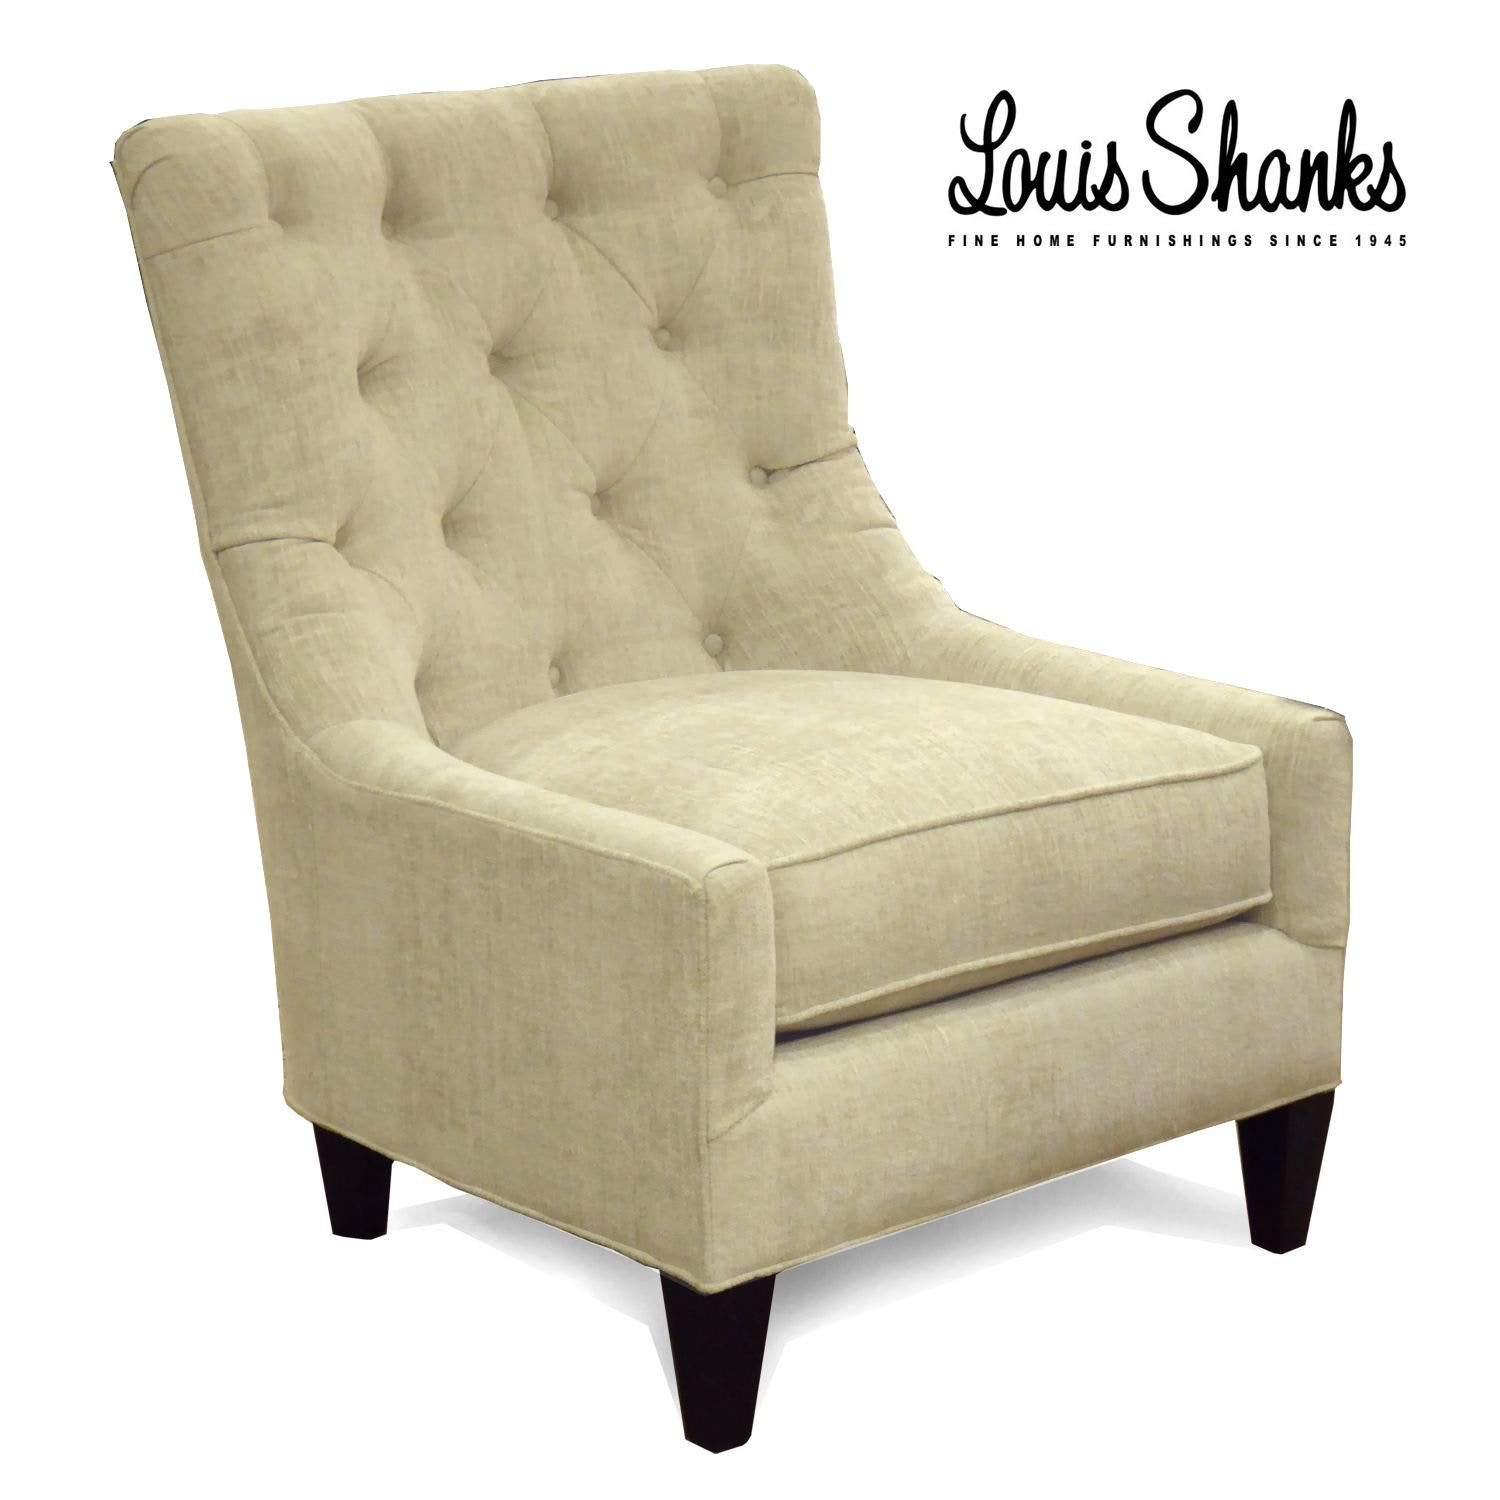 Delicieux Southern Furniture Company Layla Beach Chair 34213